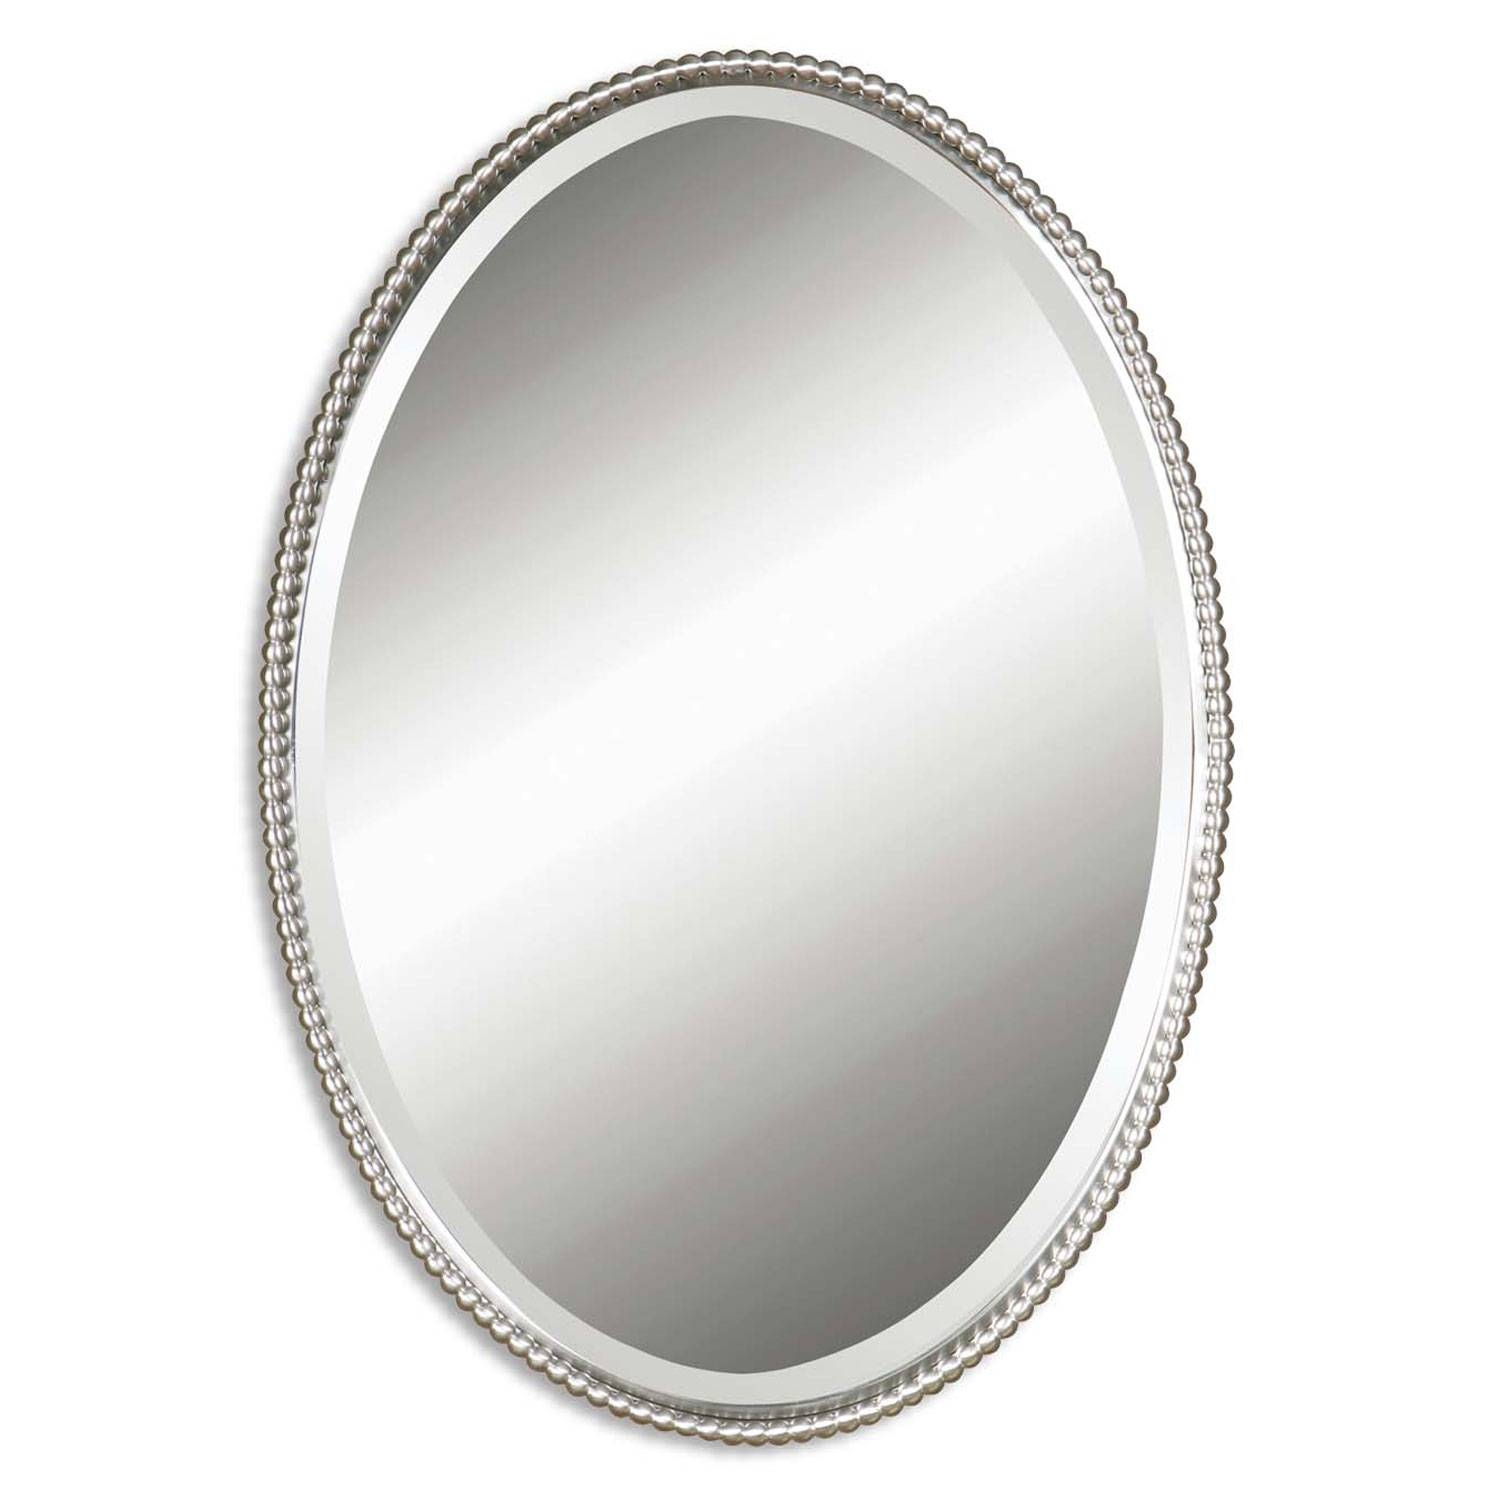 Nickel Brushed Mirrors | Bellacor pertaining to Round Bevelled Mirrors (Image 11 of 25)